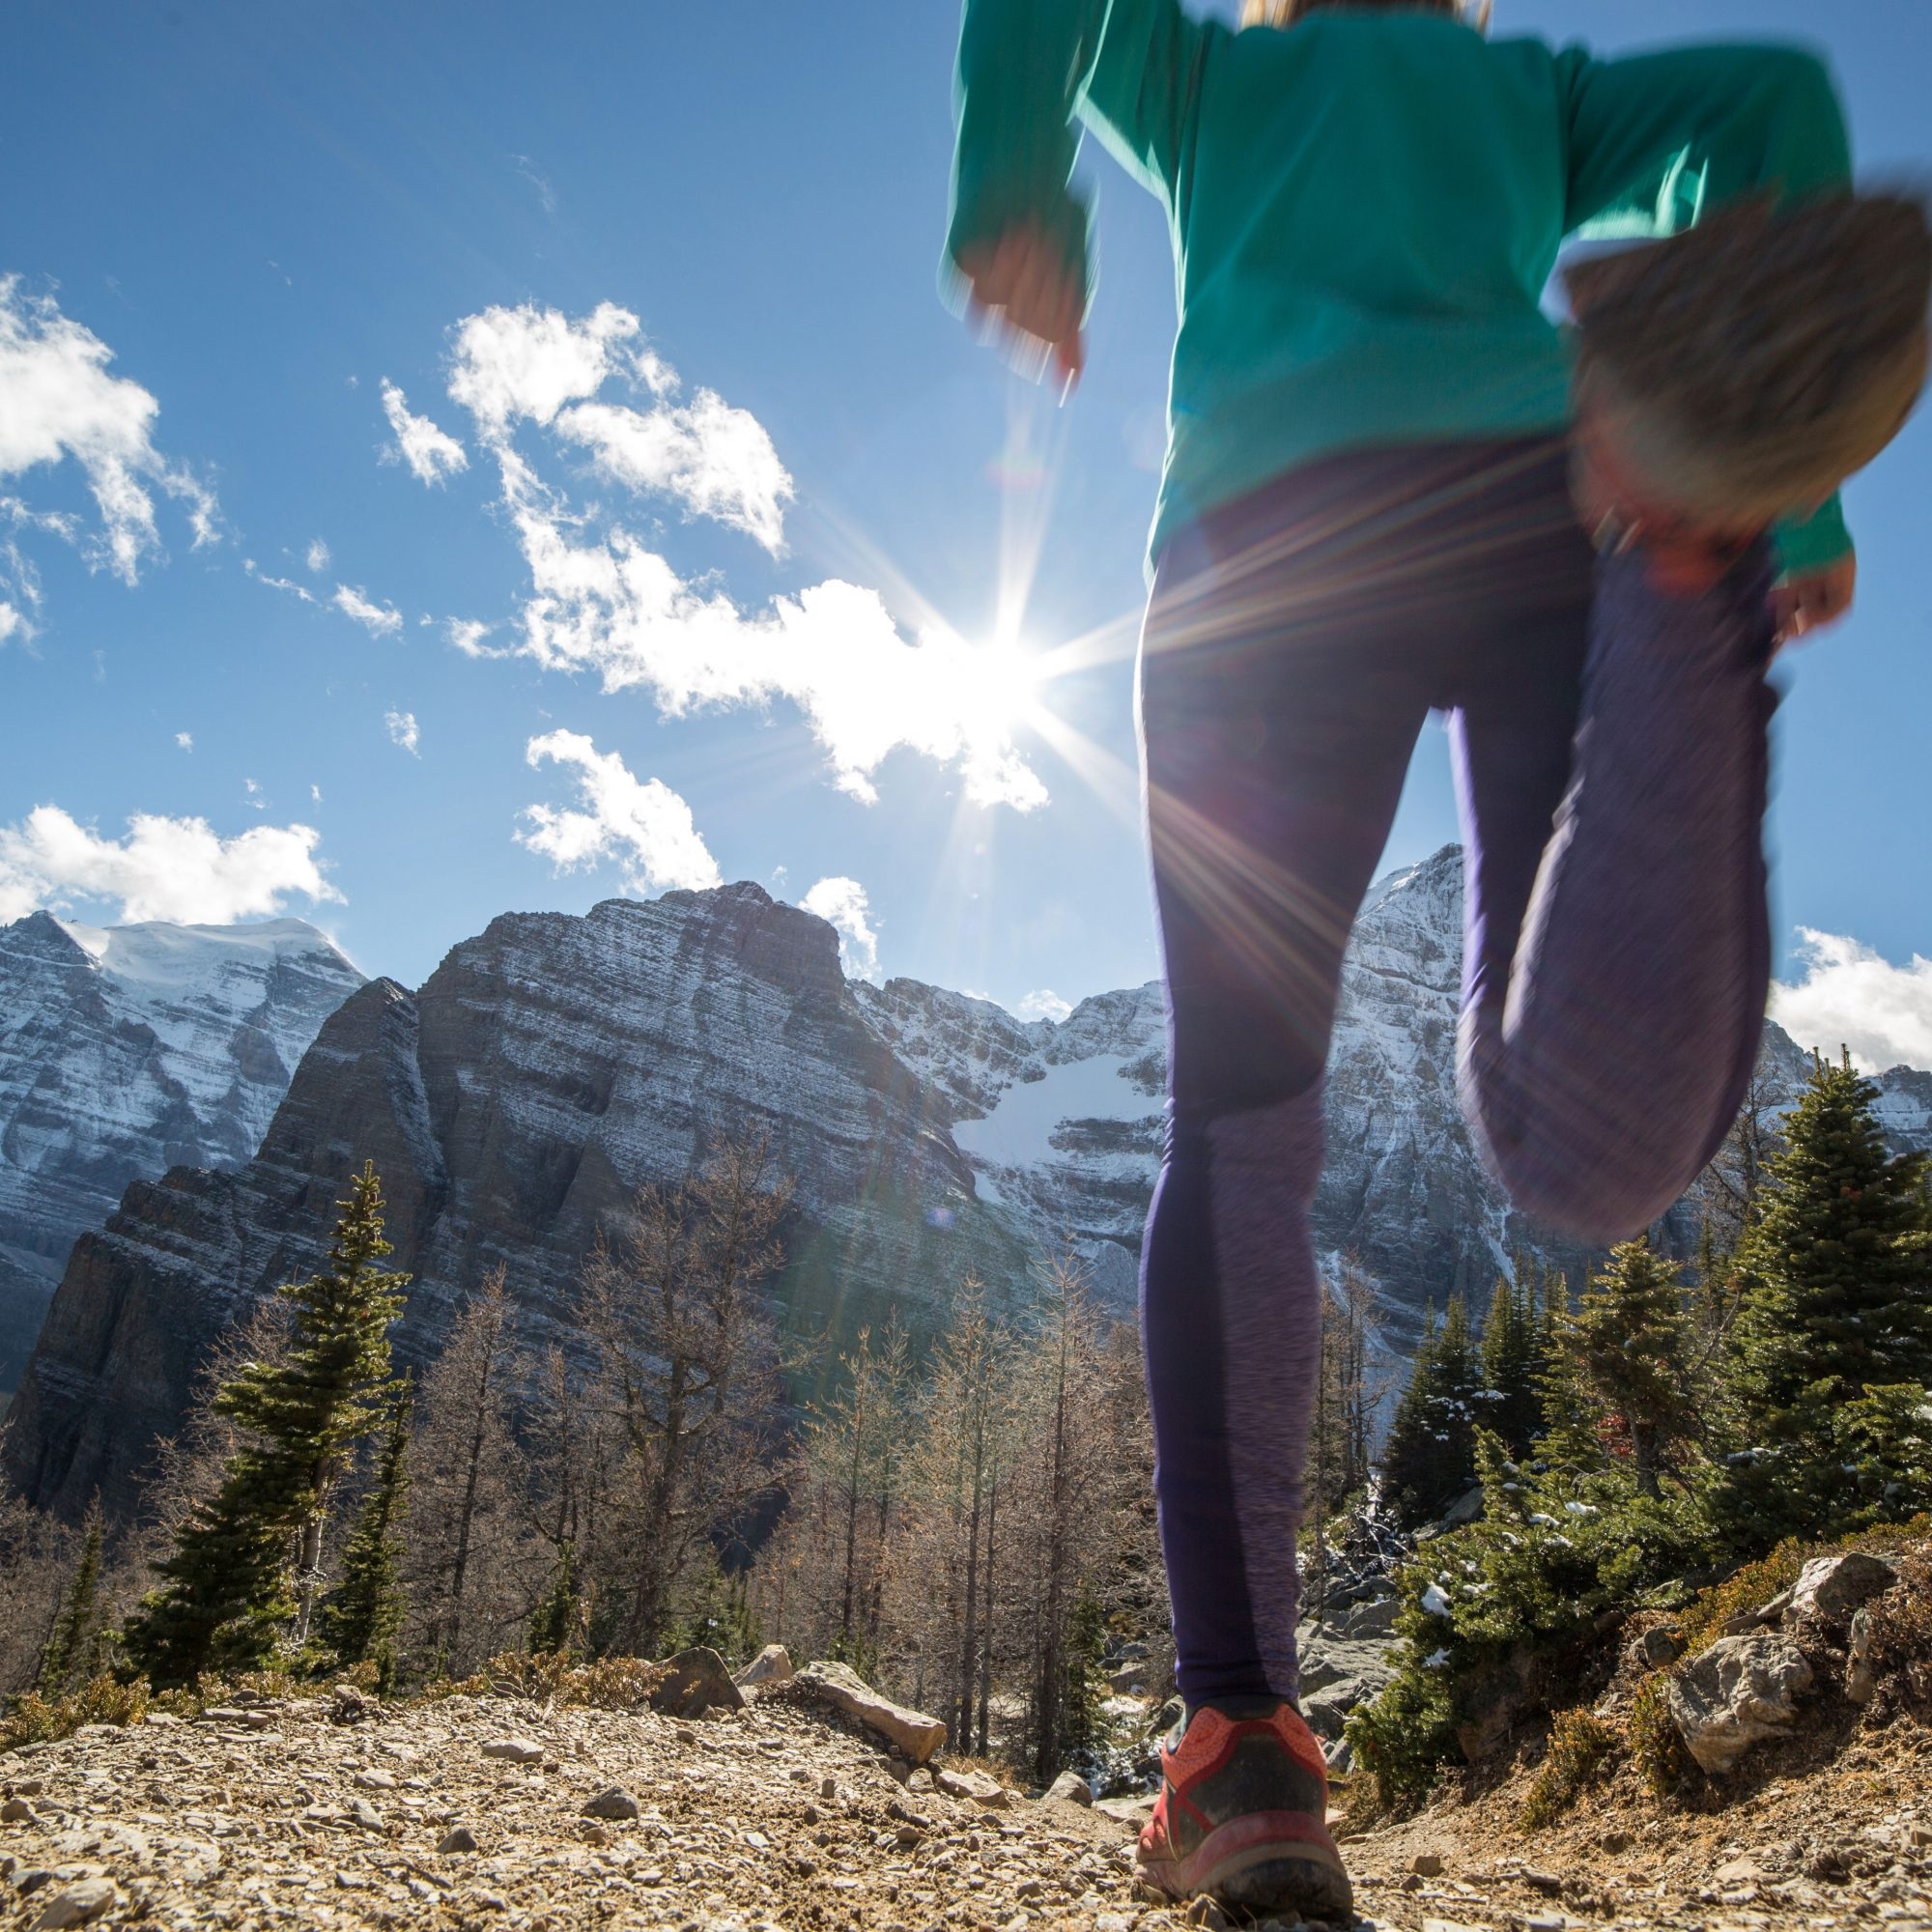 Close_Up_Of_woman's_Feet_Running_In_Mountains